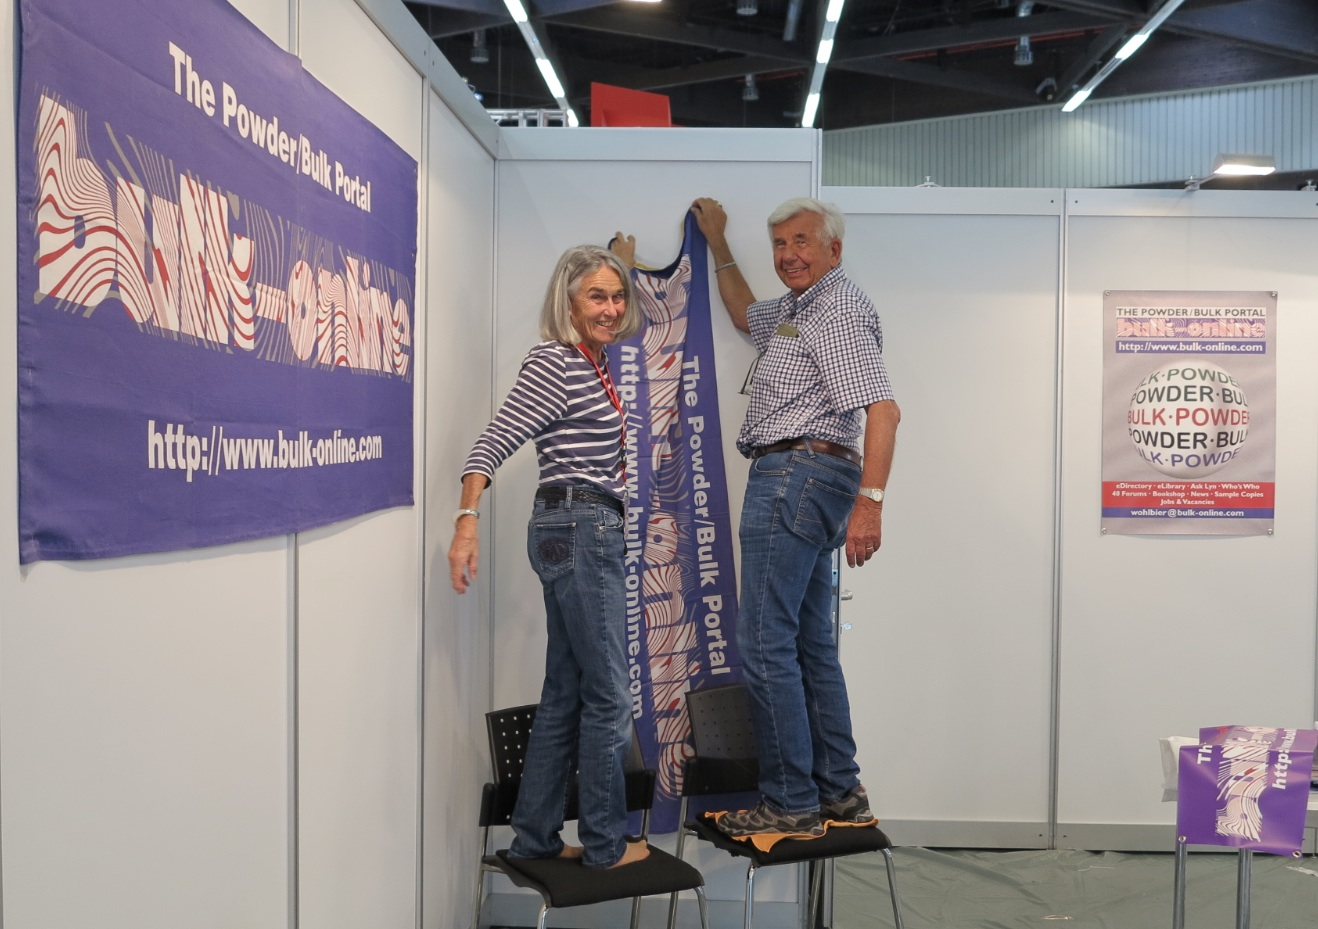 Ute + Reinhard preparing their booth